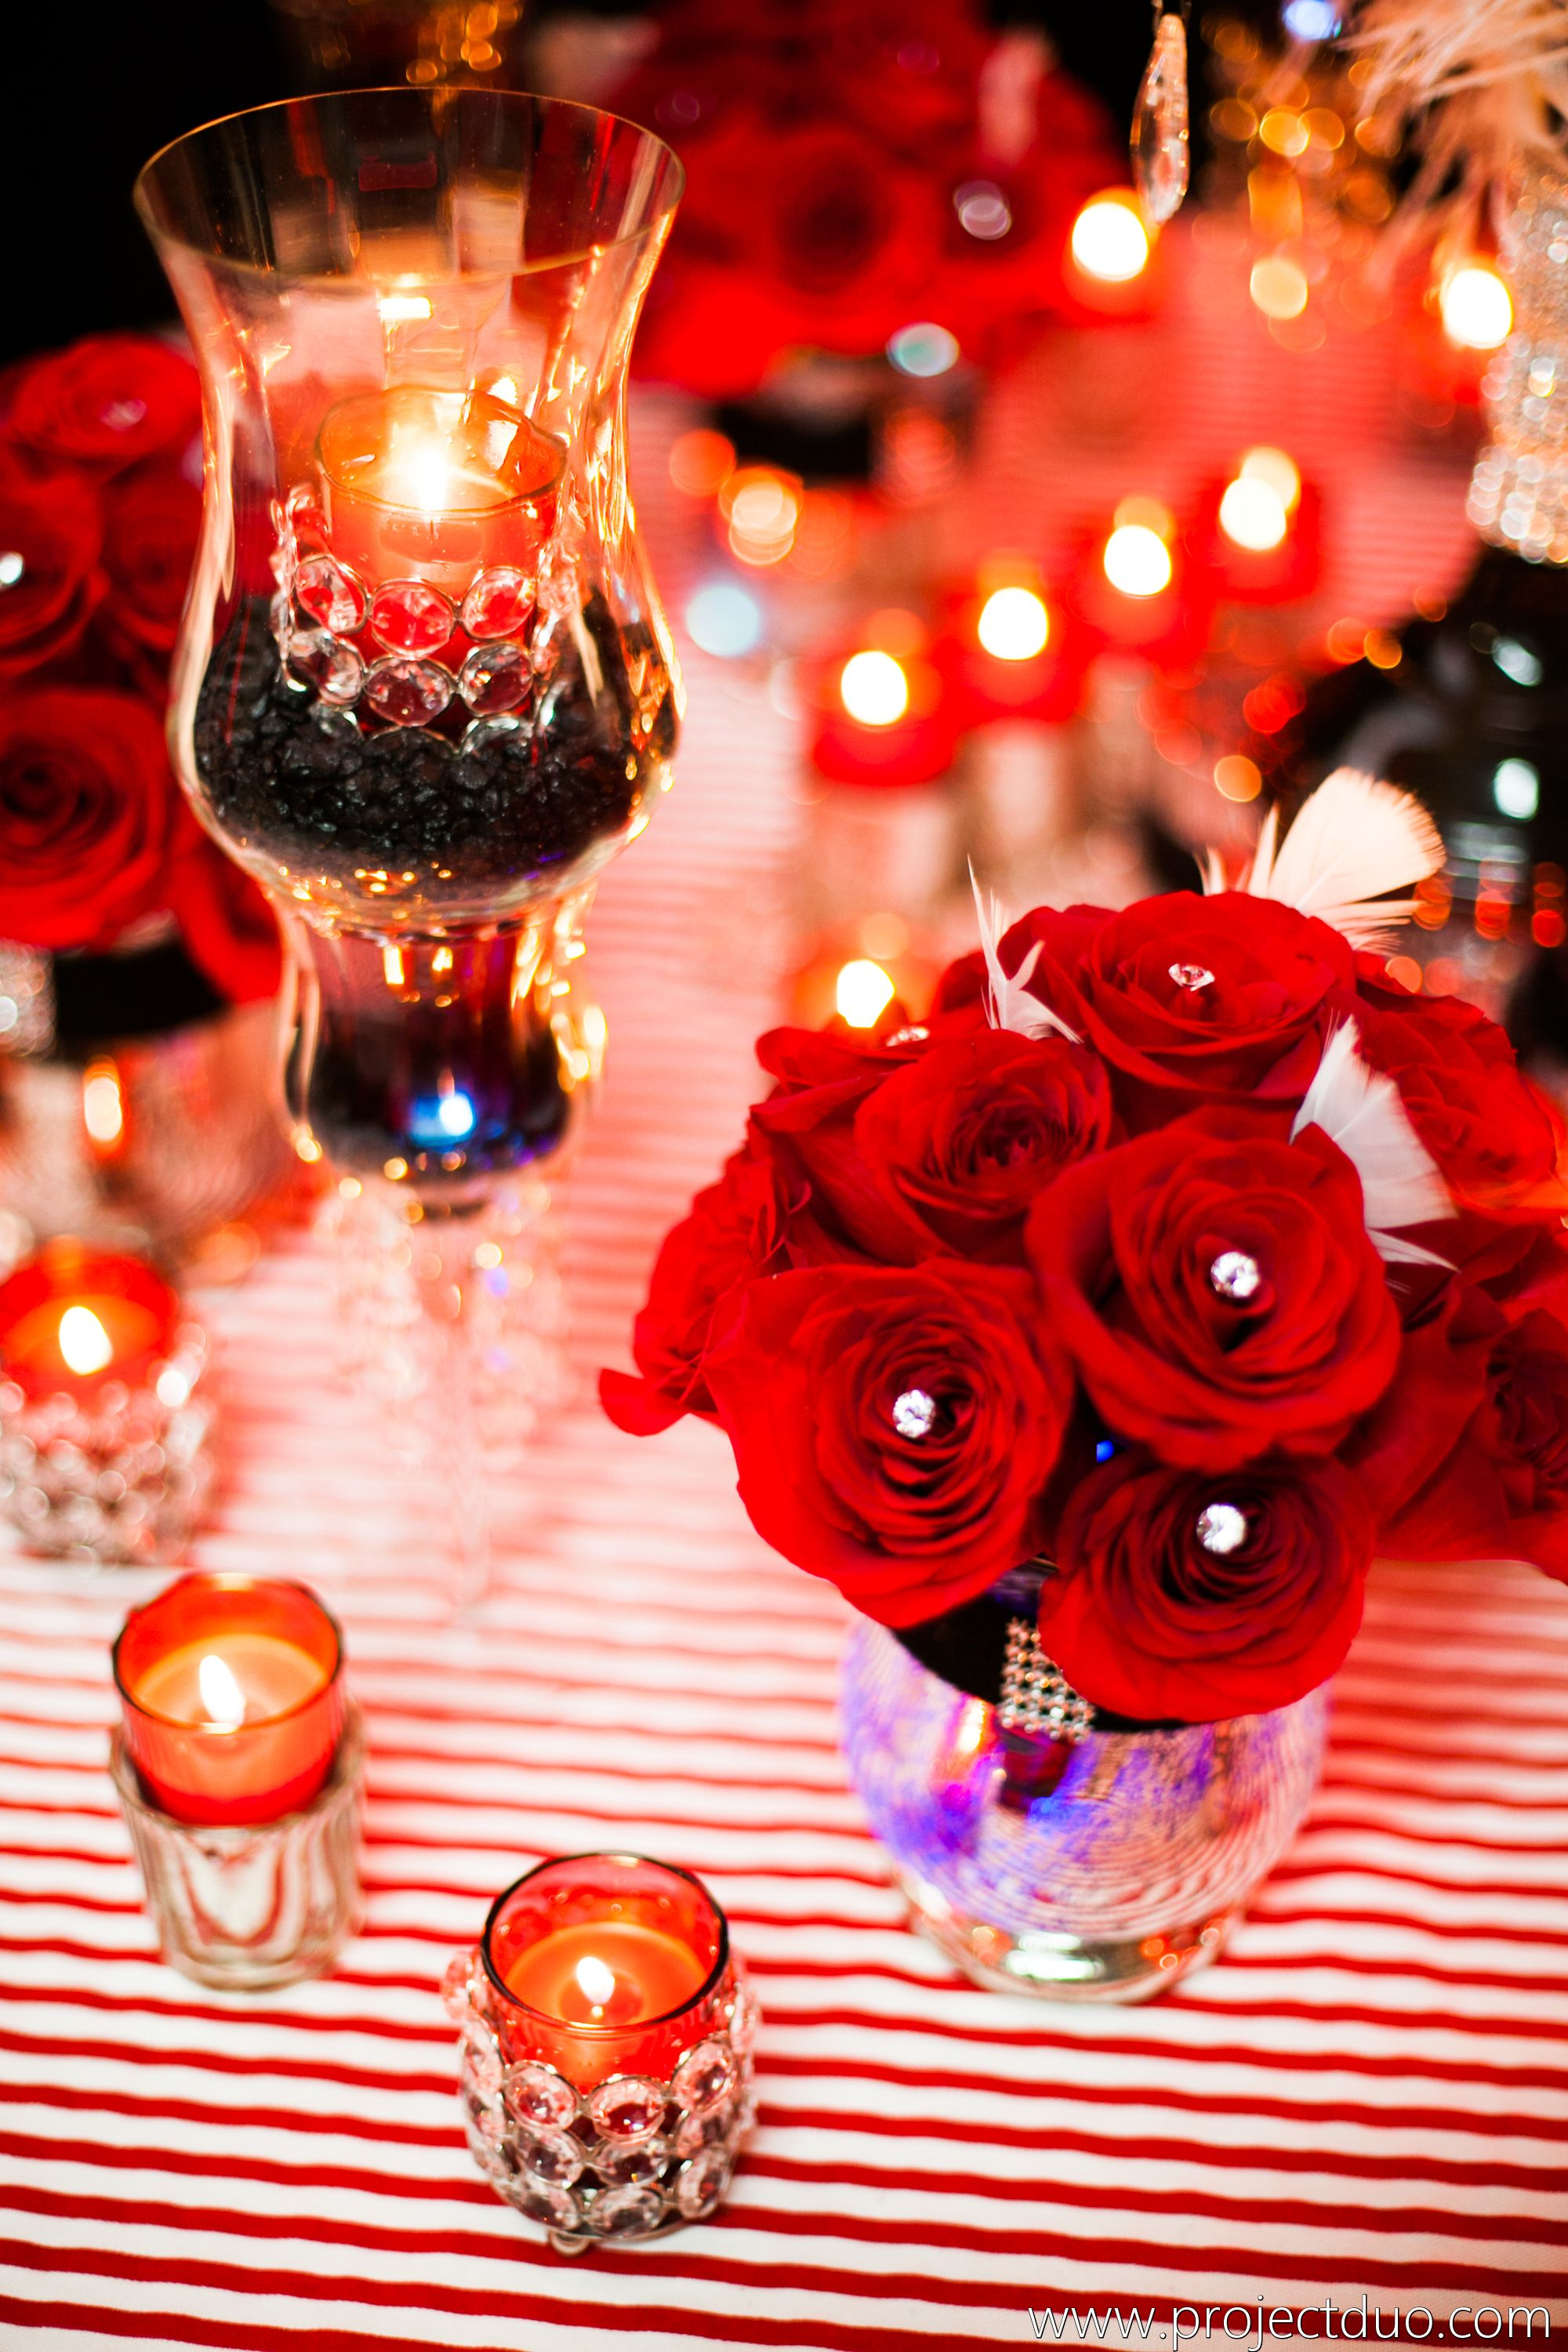 Moulin rouge party moulin rouge party pinterest - Moulin Rouge